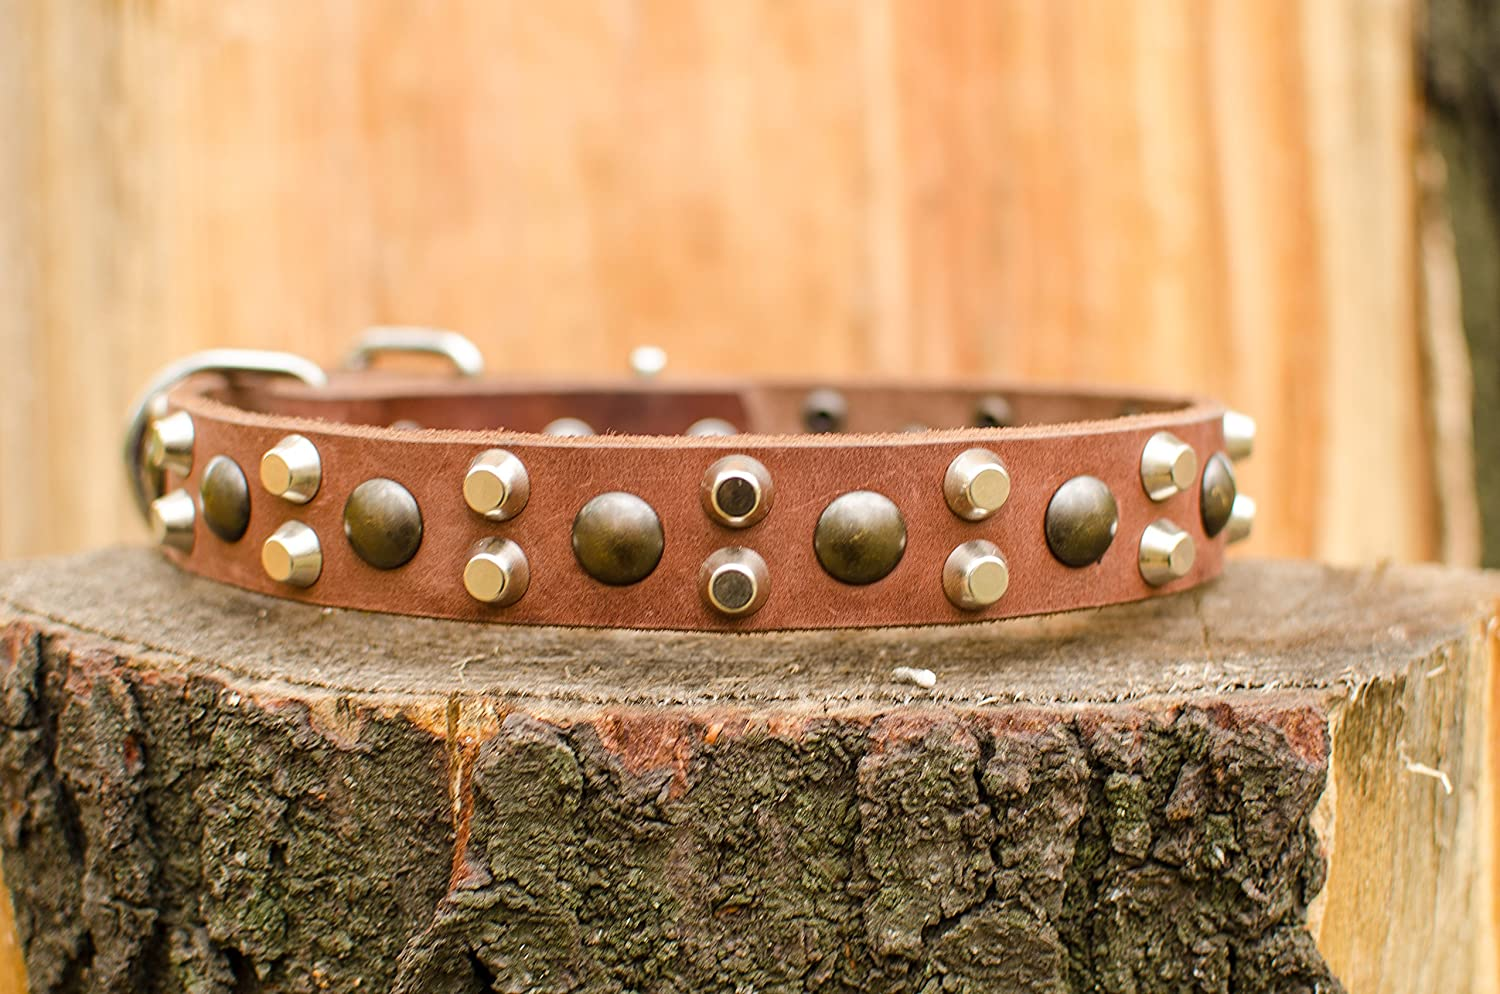 ForDogTrainers 29 inch Antique Flowers Decorated Tan Leather Dog Collar with Chrome Plated Round Studs  4 5 inches (20 mm) Wide